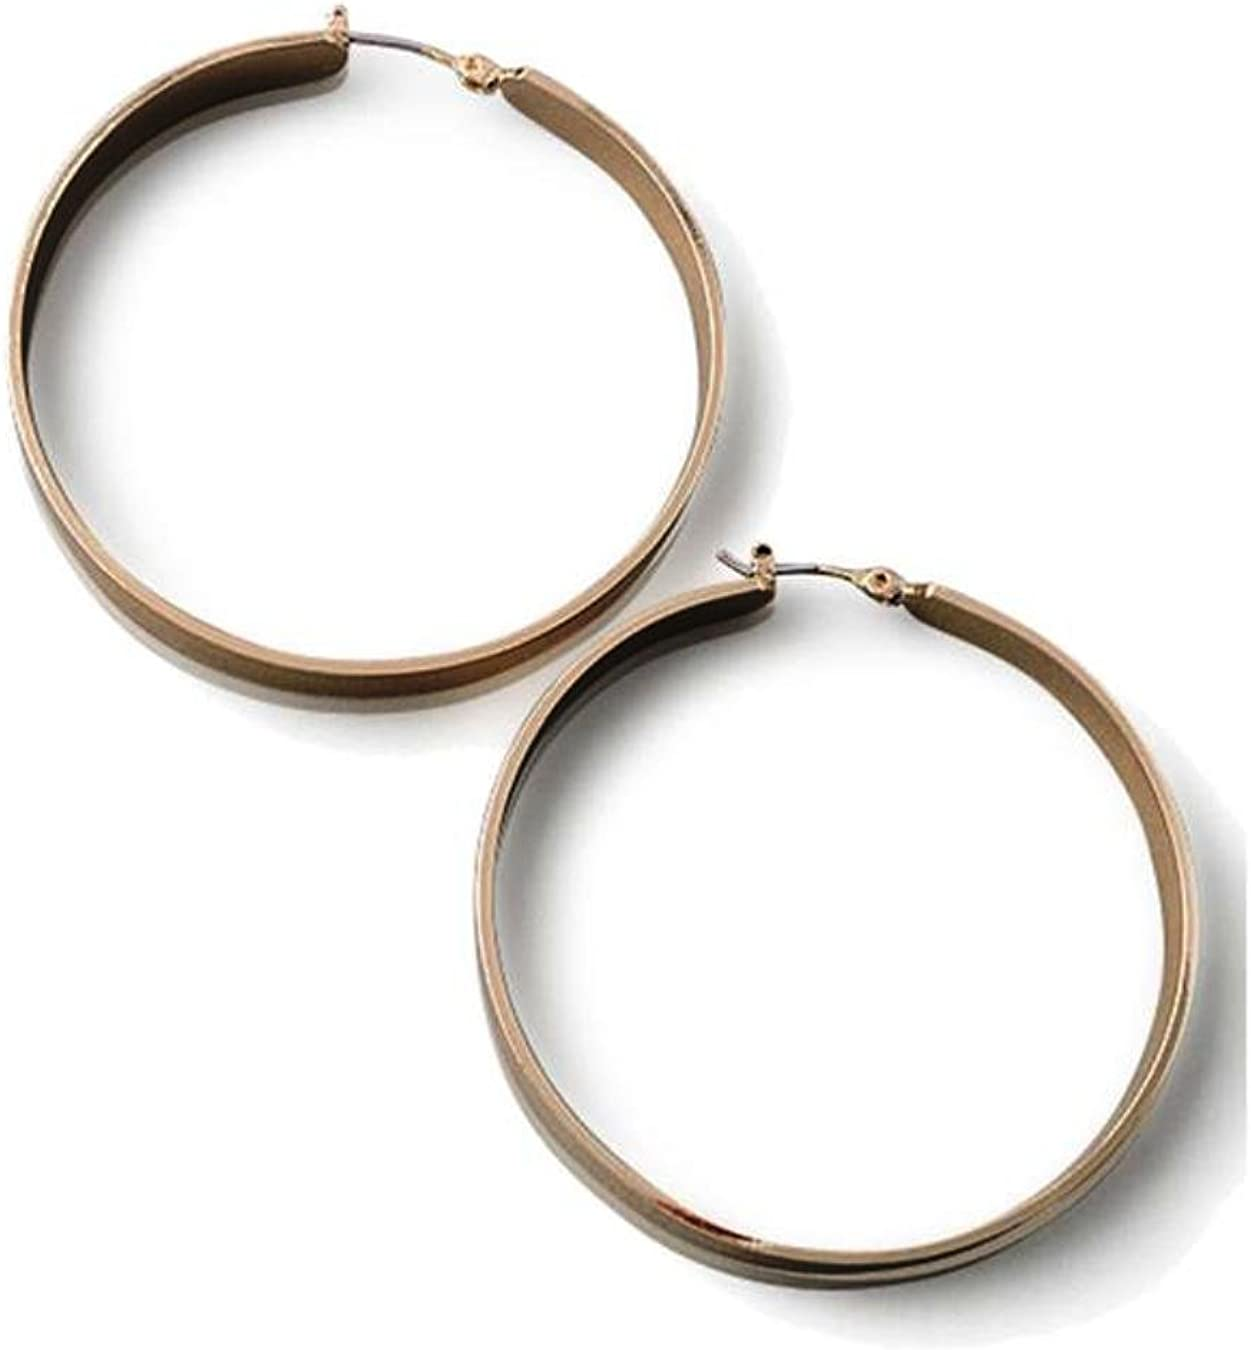 Plate Hoop Rose Gold Earrings And Beautifully Crafted To Portray Pure Elegance